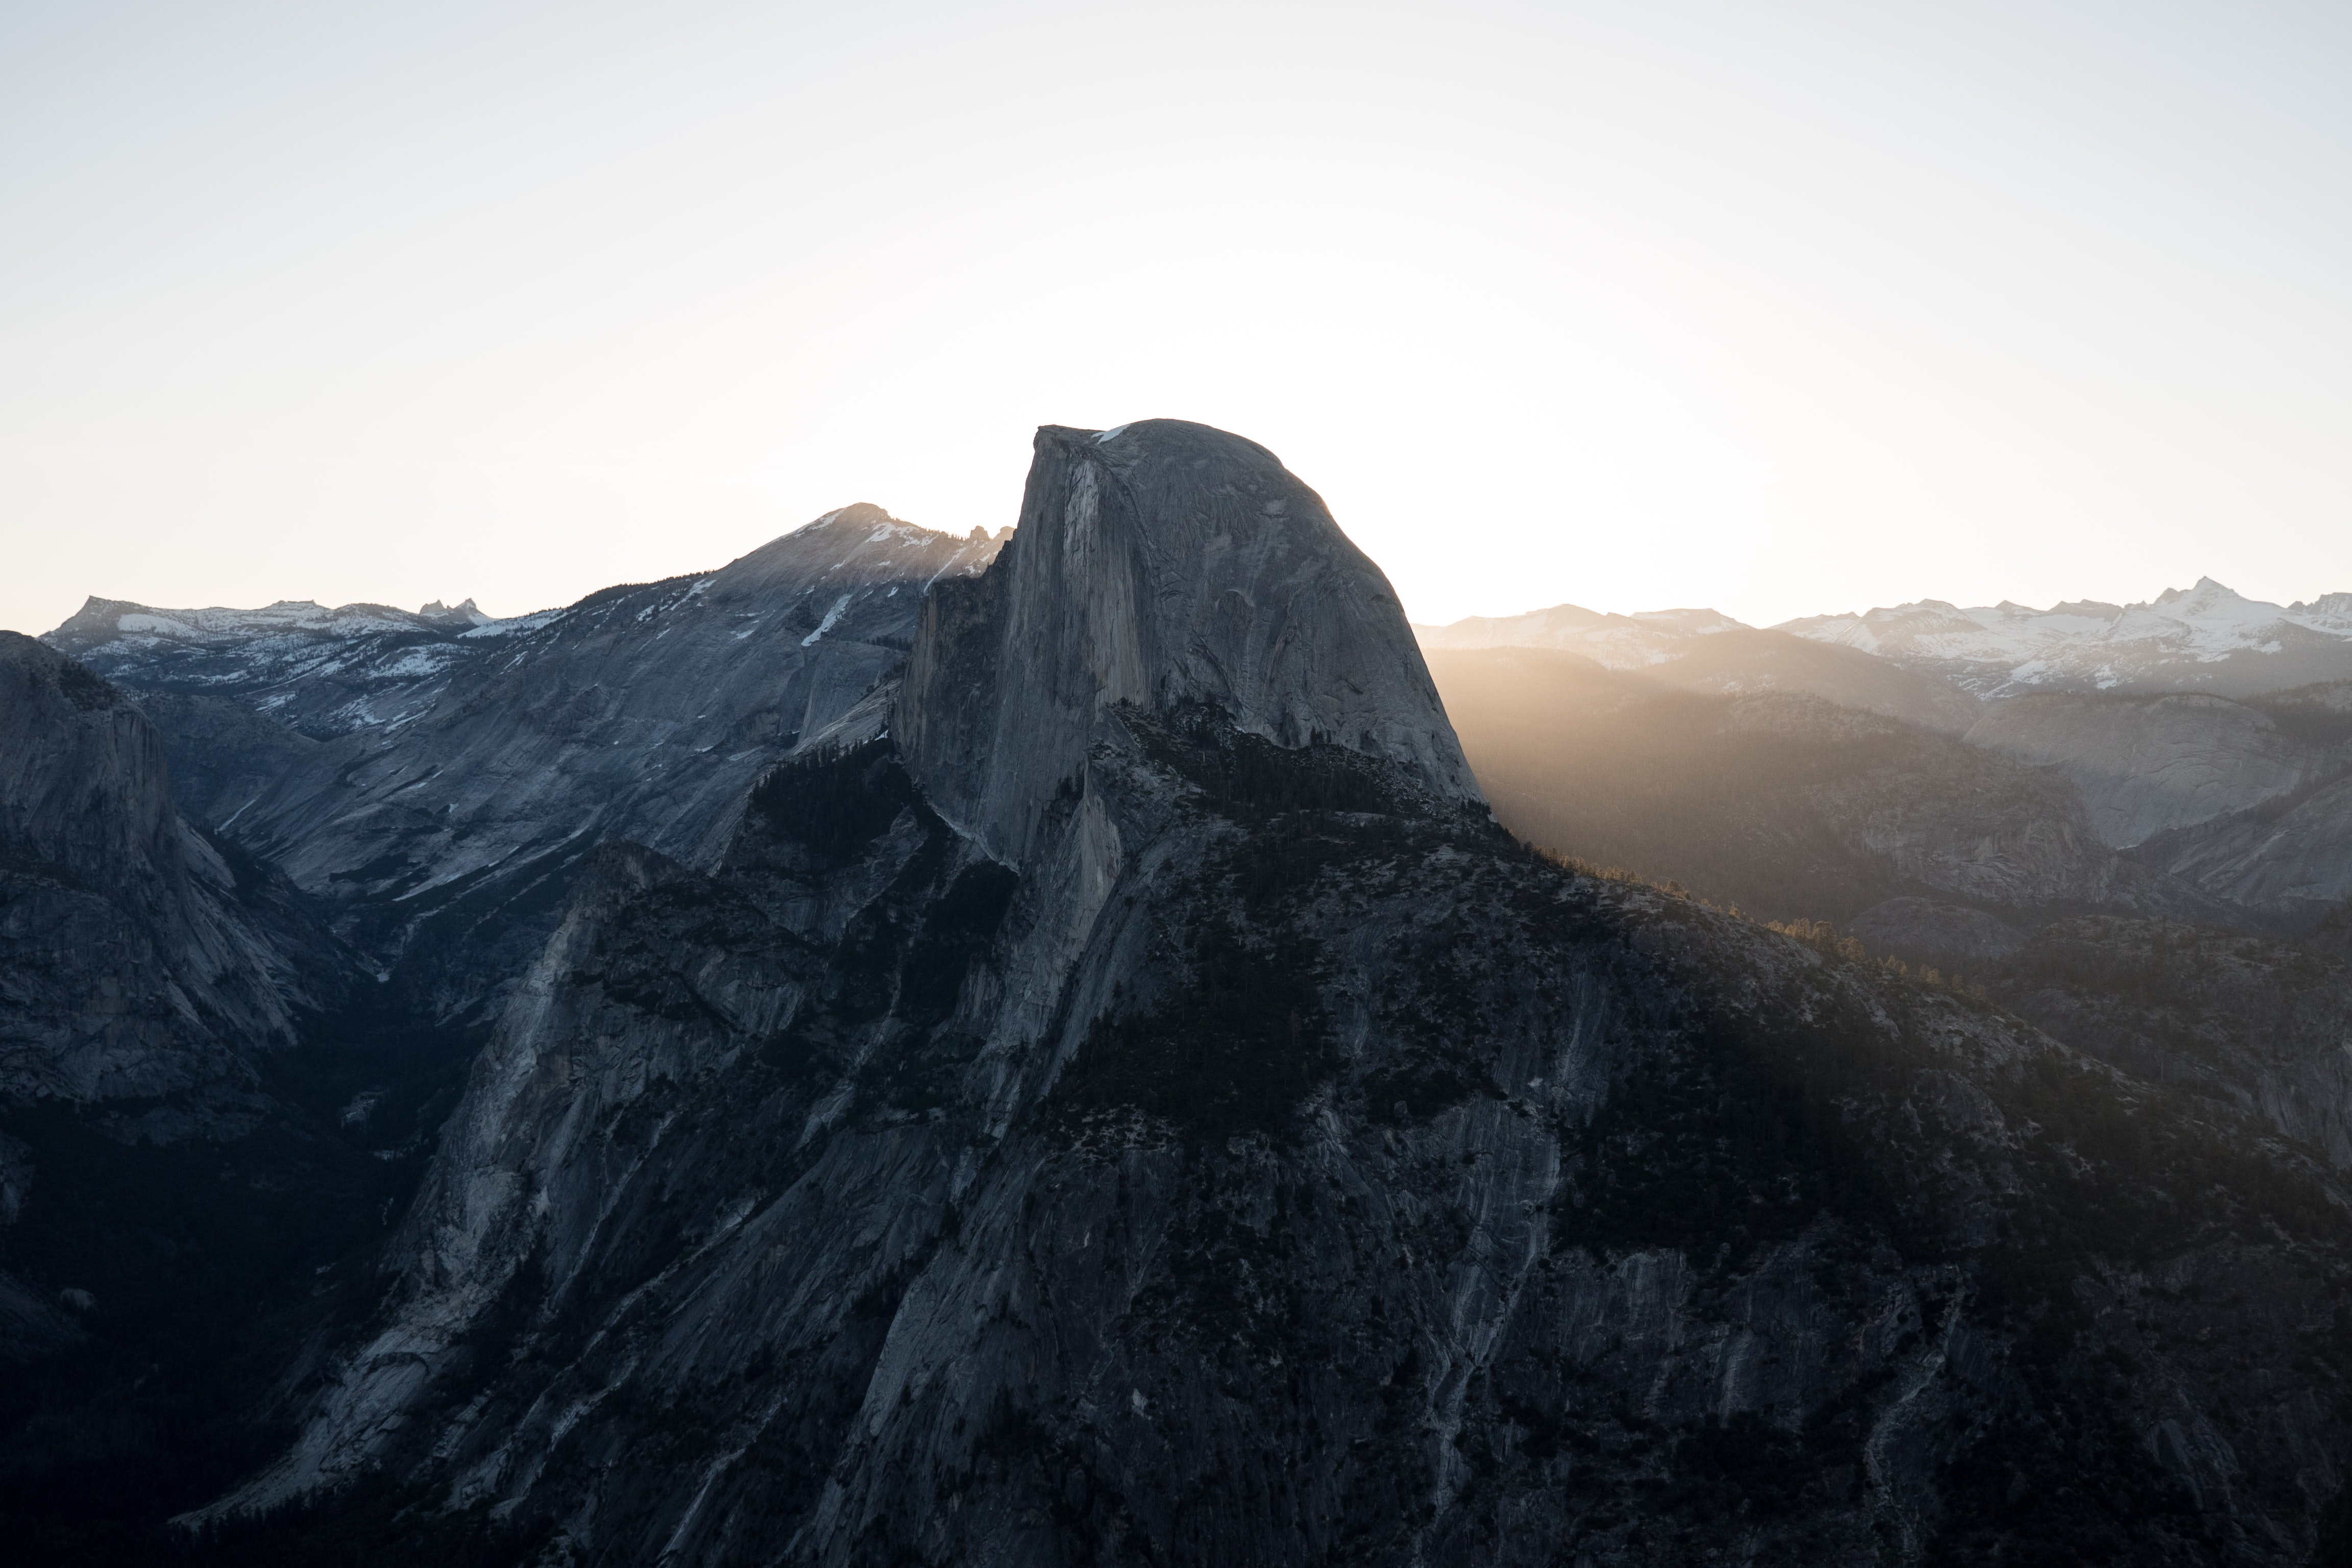 A rocky peak in a mountain range illuminated by the rays of the sunset